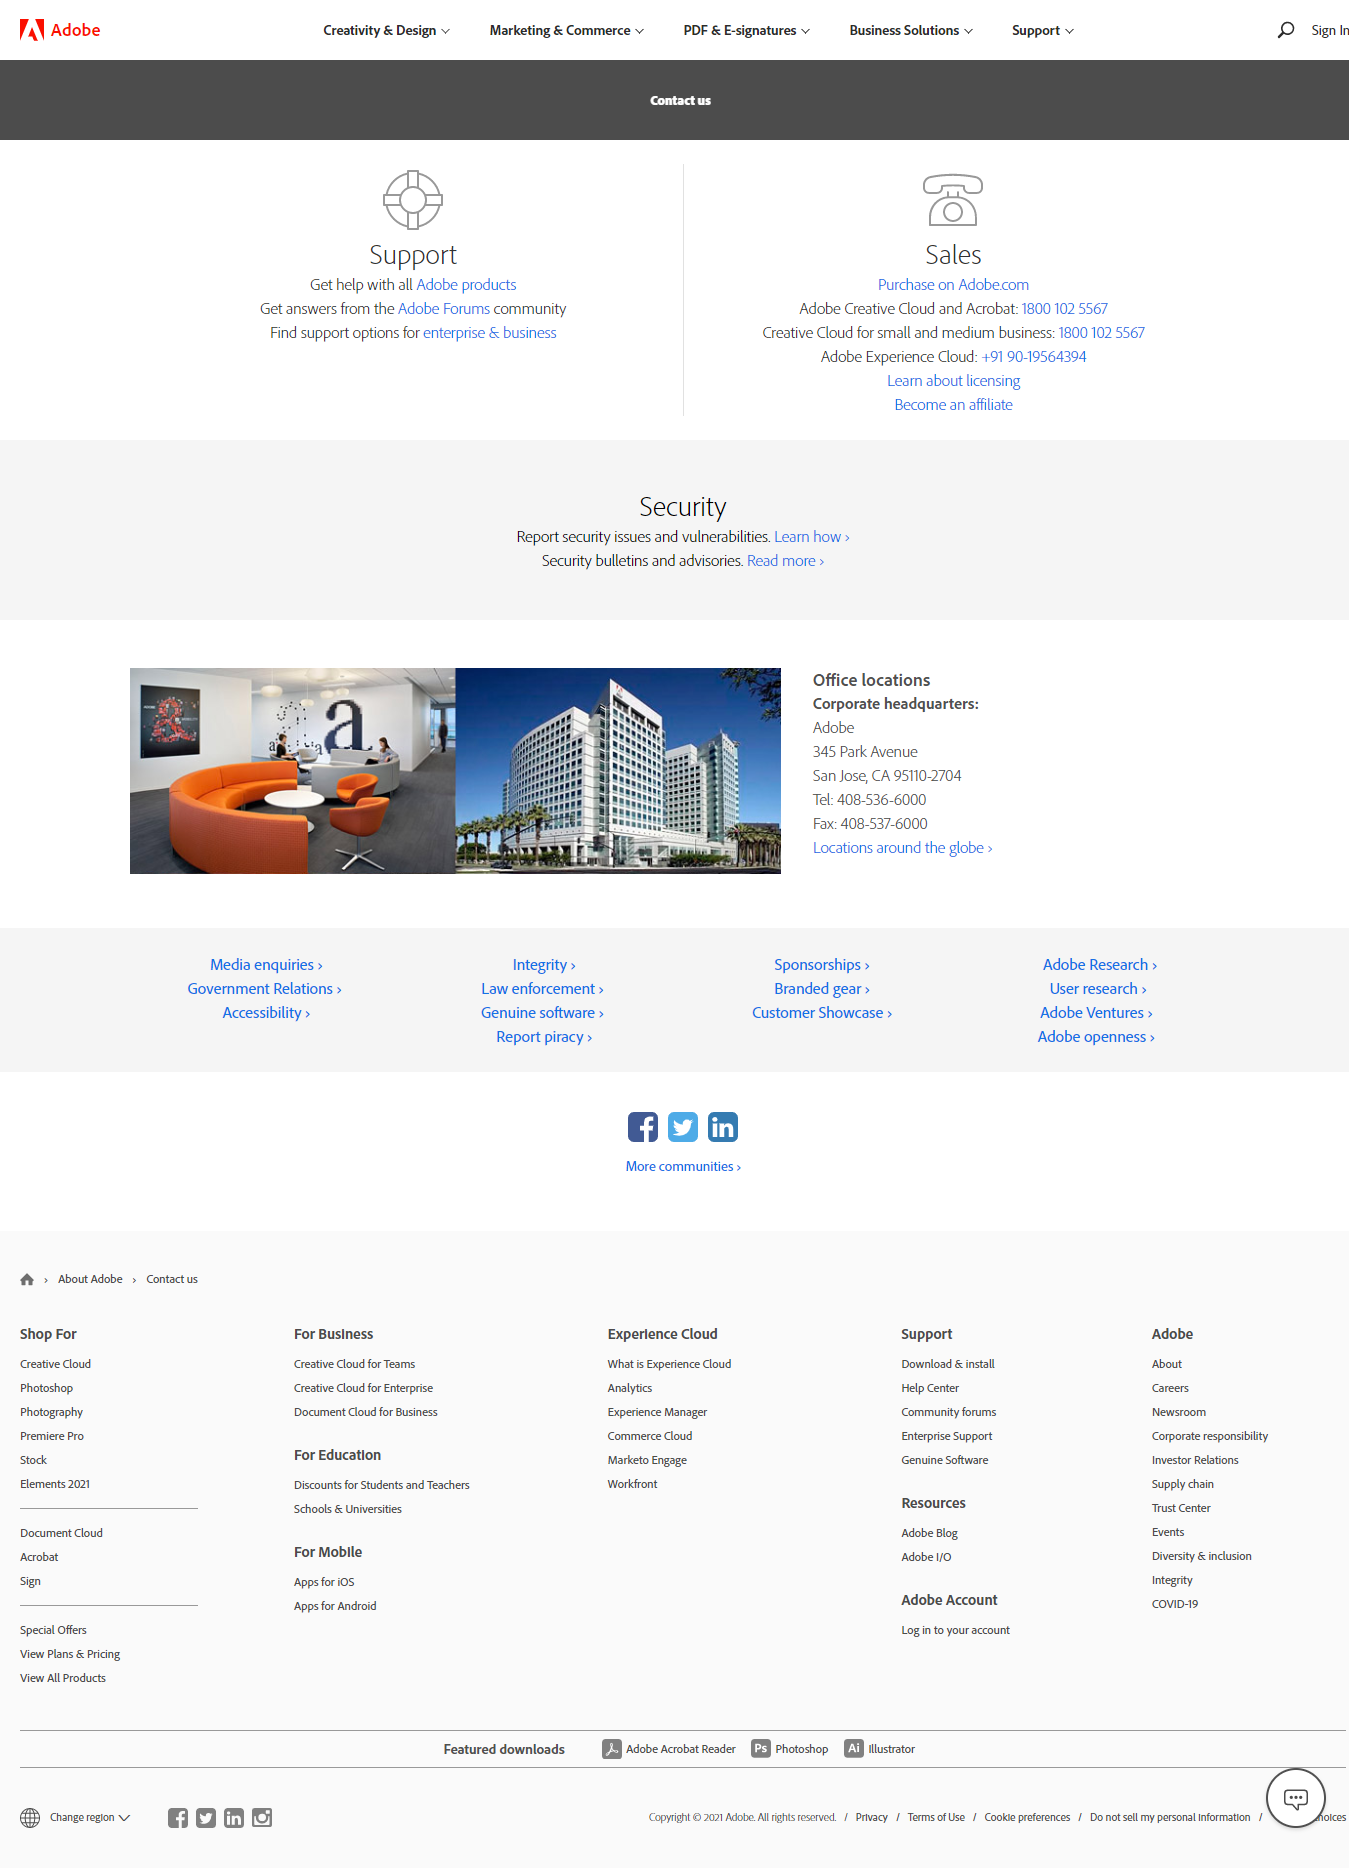 adobe contact us page